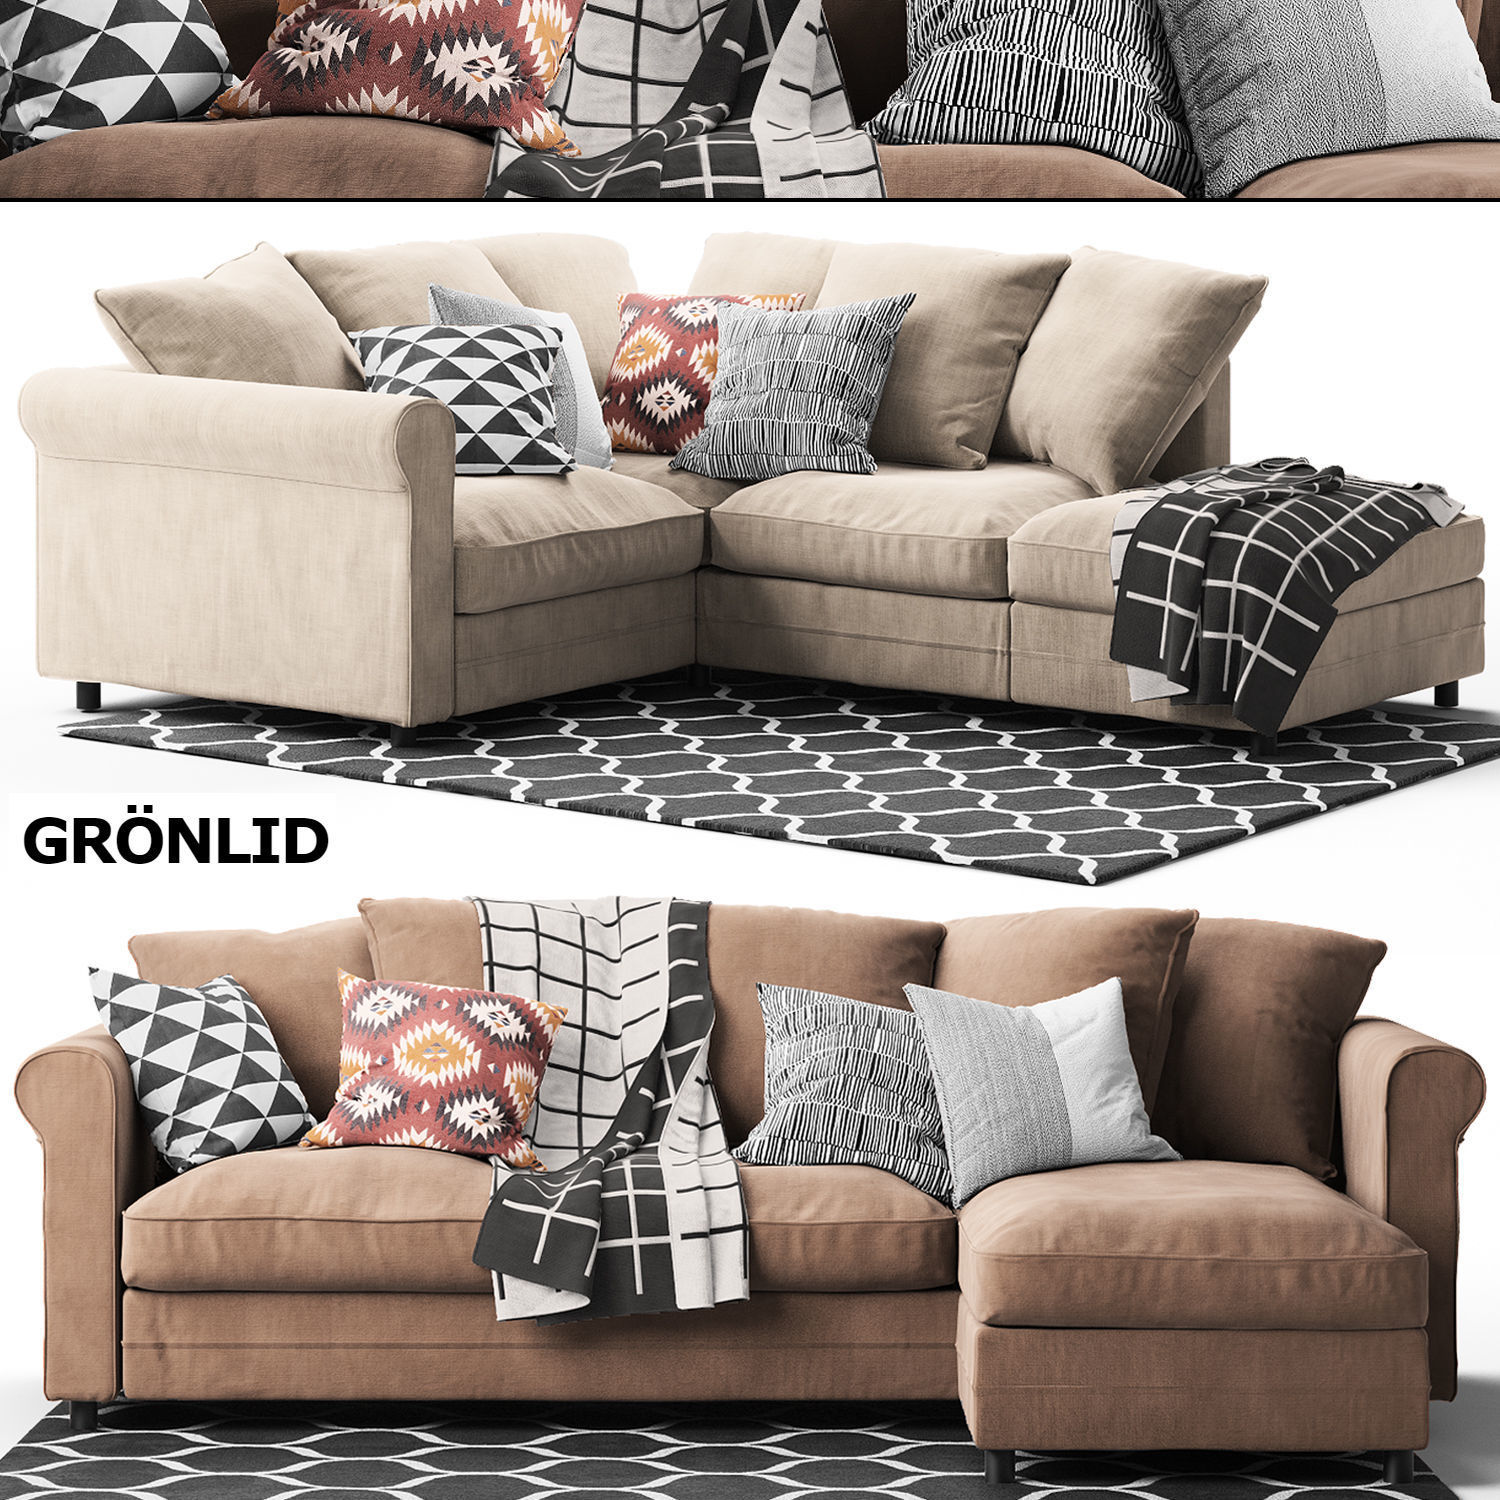 Excellent 2 Corner Sofas Gronlid Ikea 3D Model Caraccident5 Cool Chair Designs And Ideas Caraccident5Info